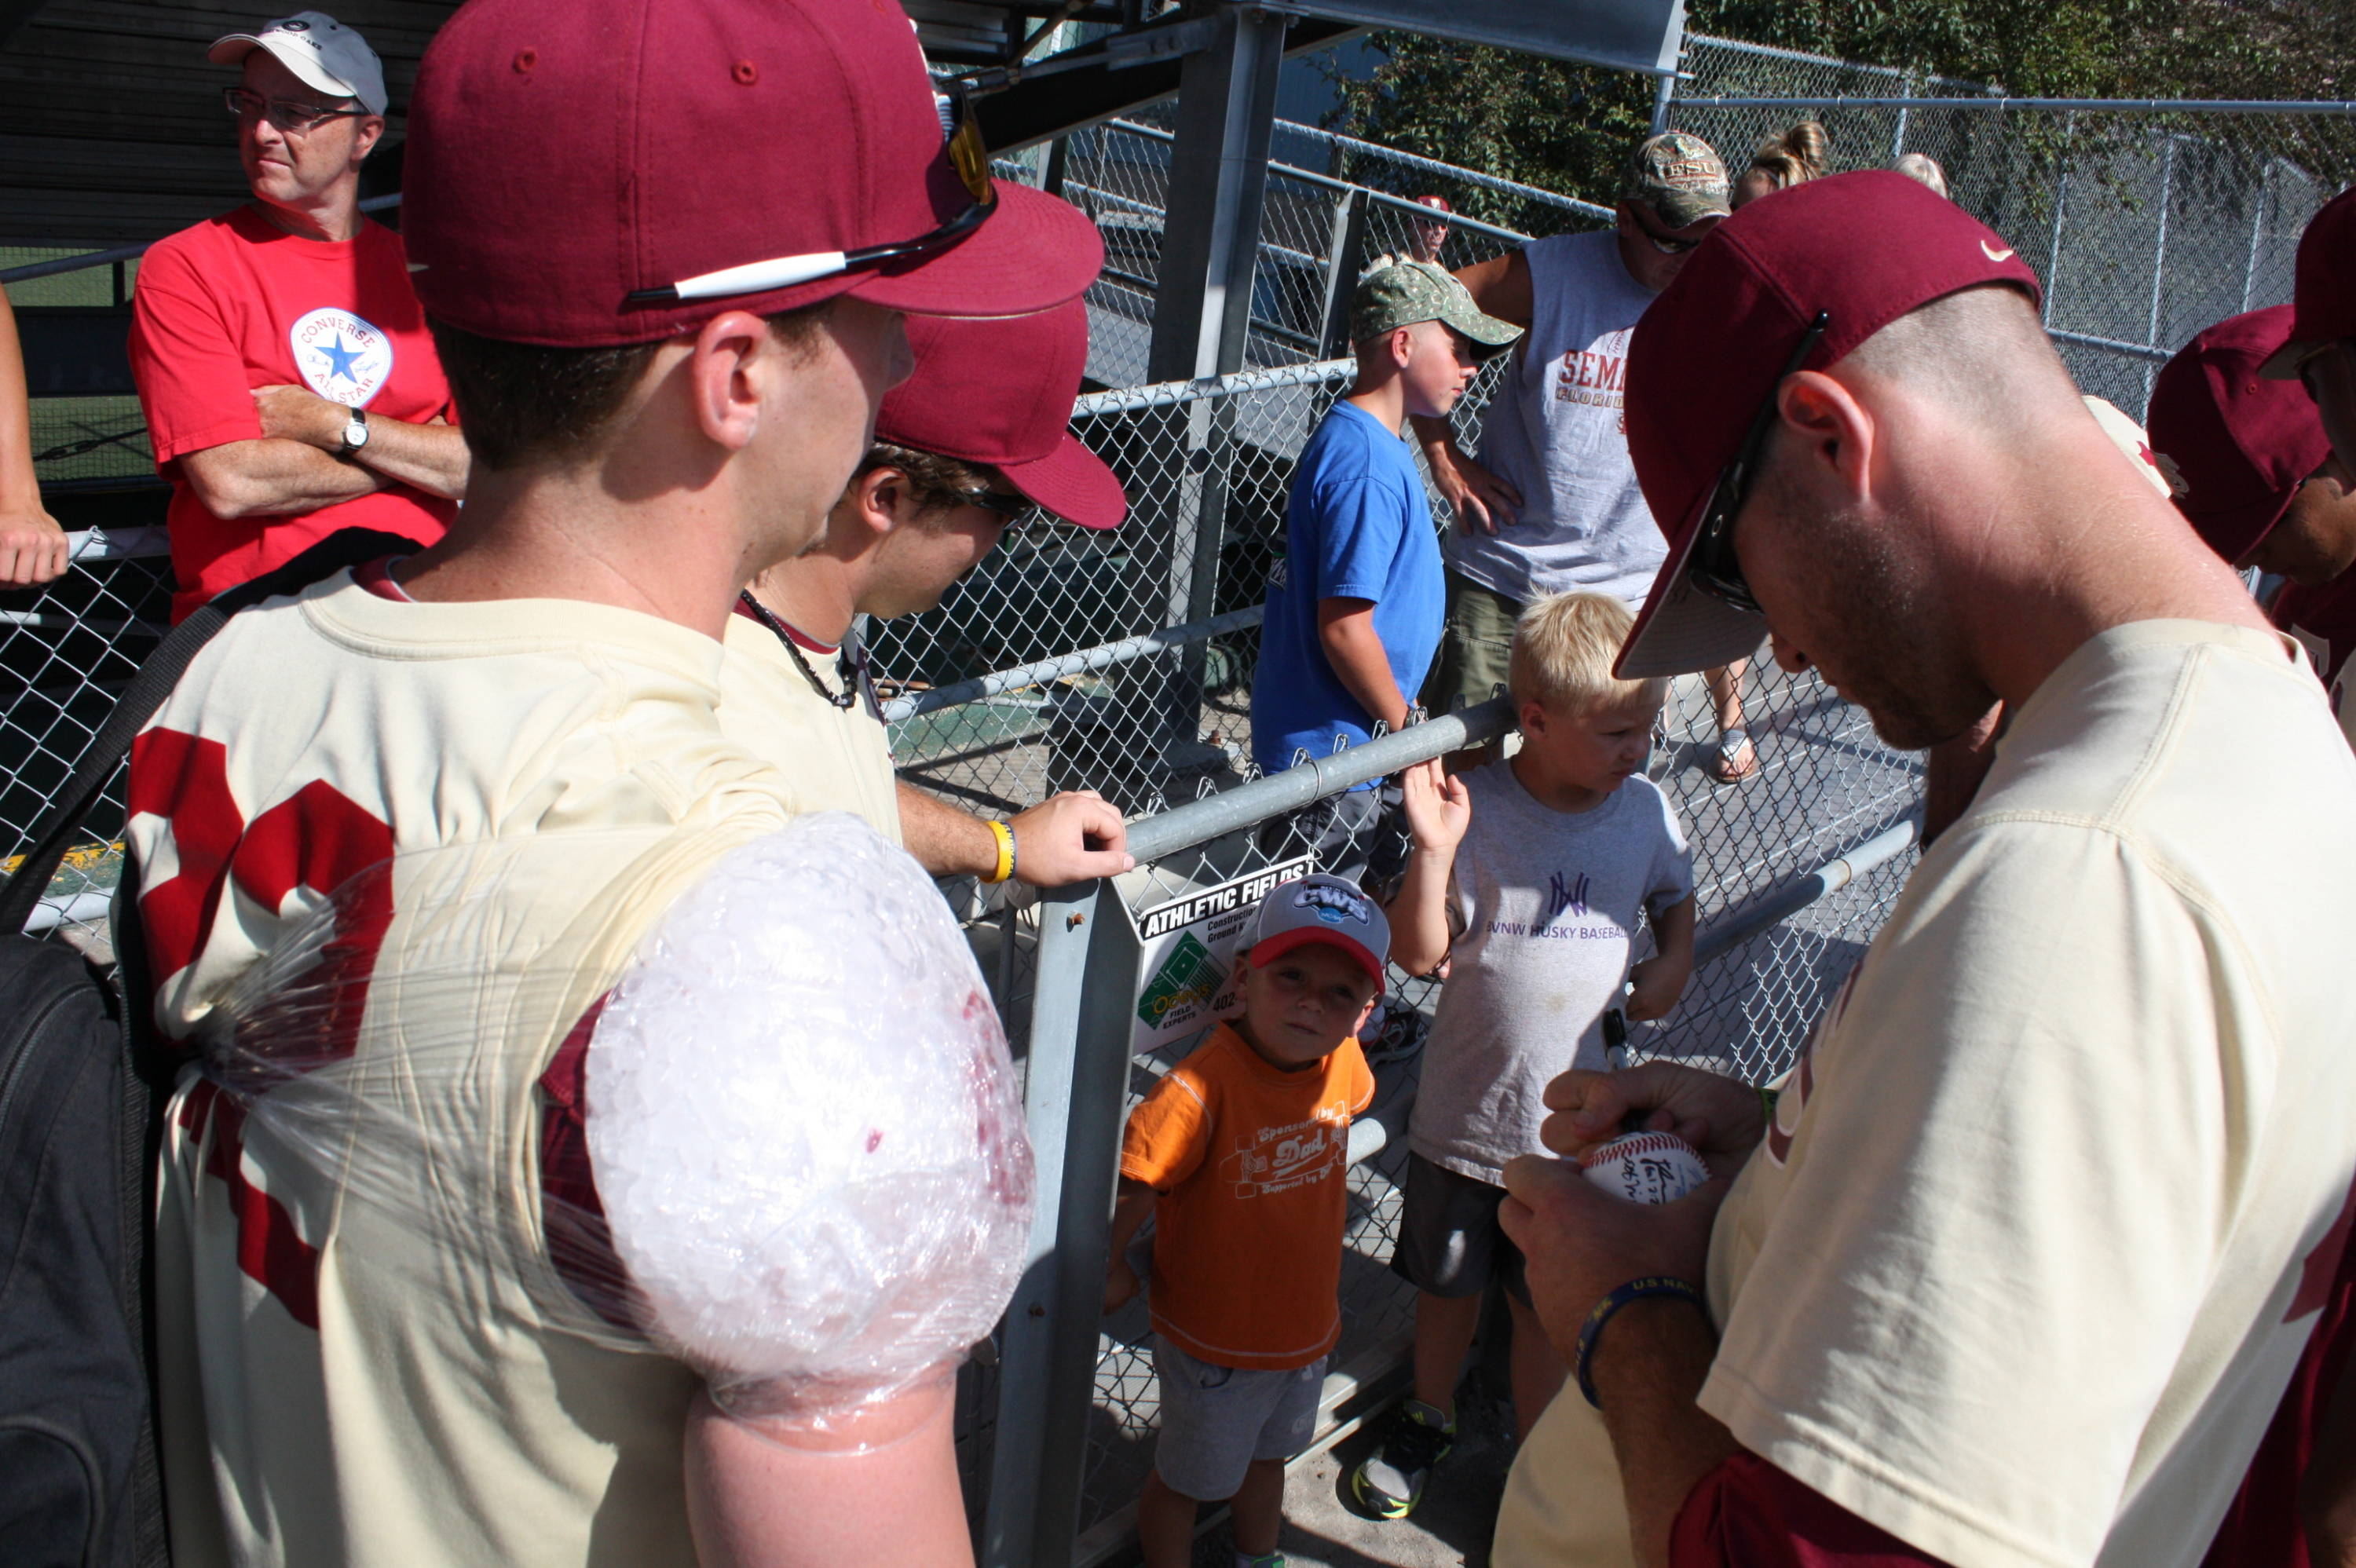 The Seminoles signing autographs after practice